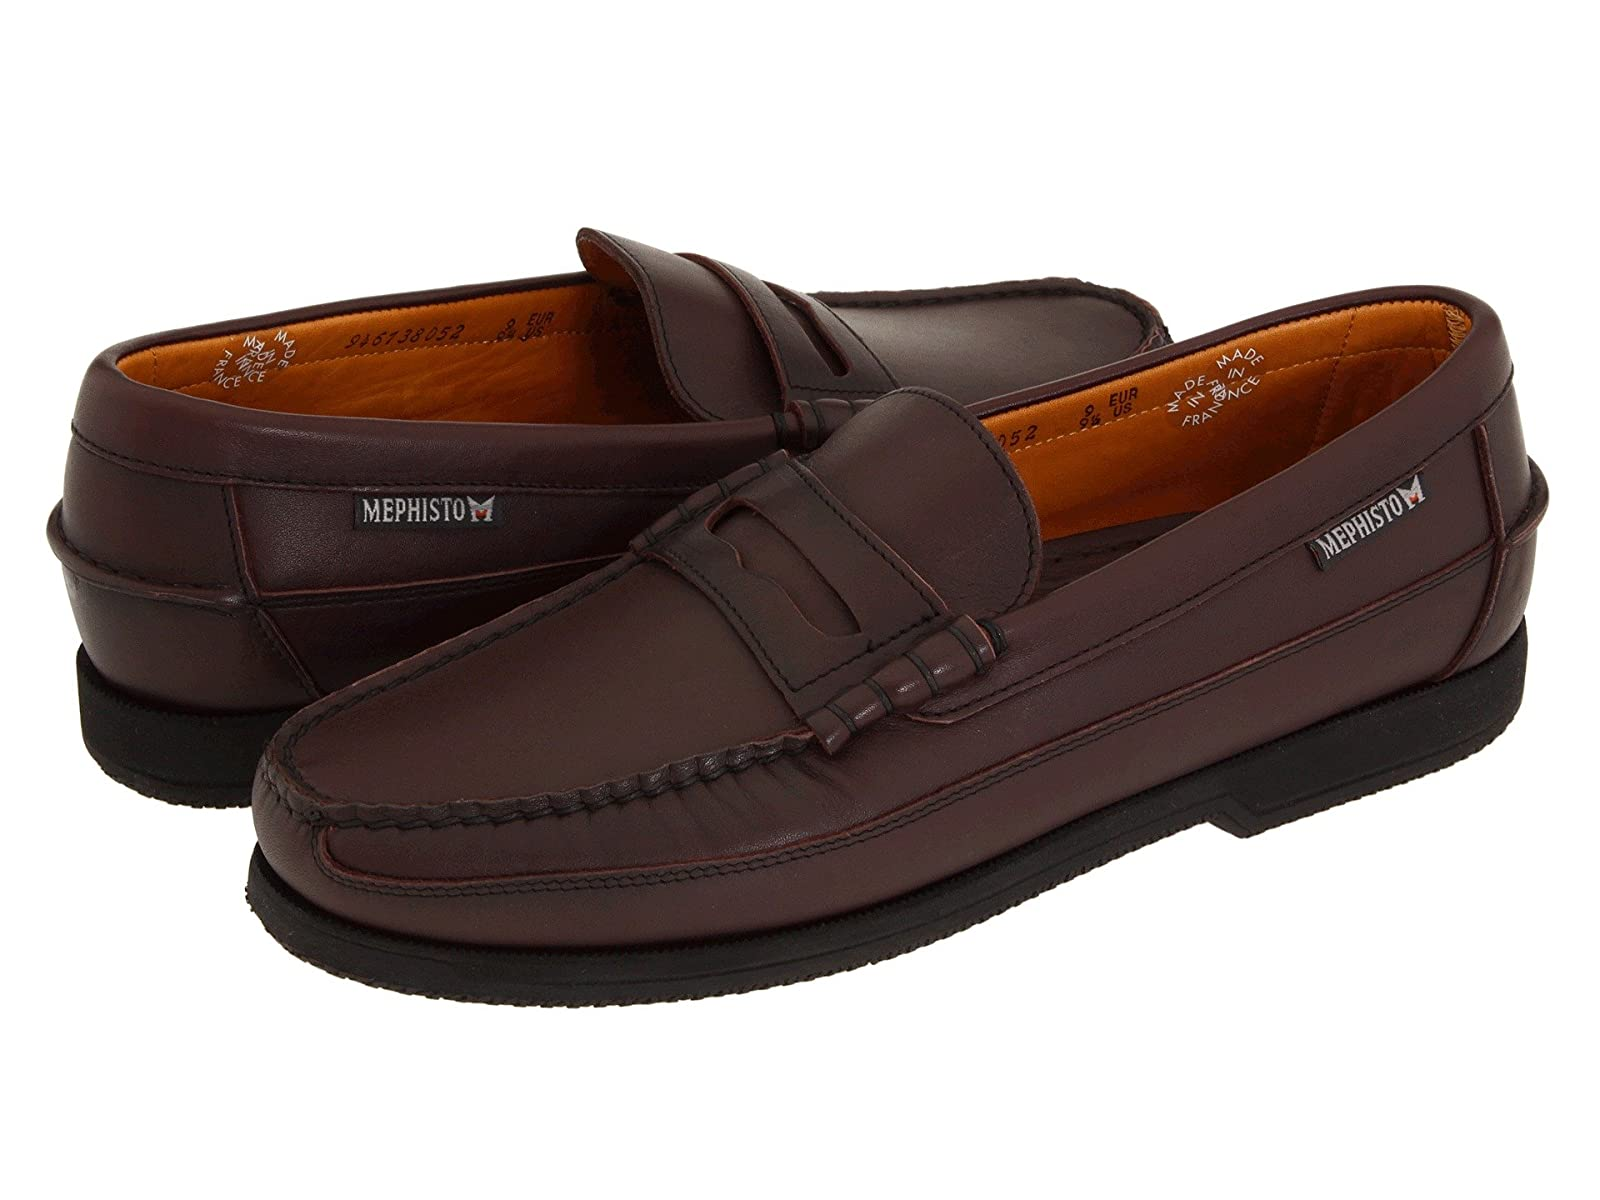 Mephisto Cap VertAtmospheric grades have affordable shoes